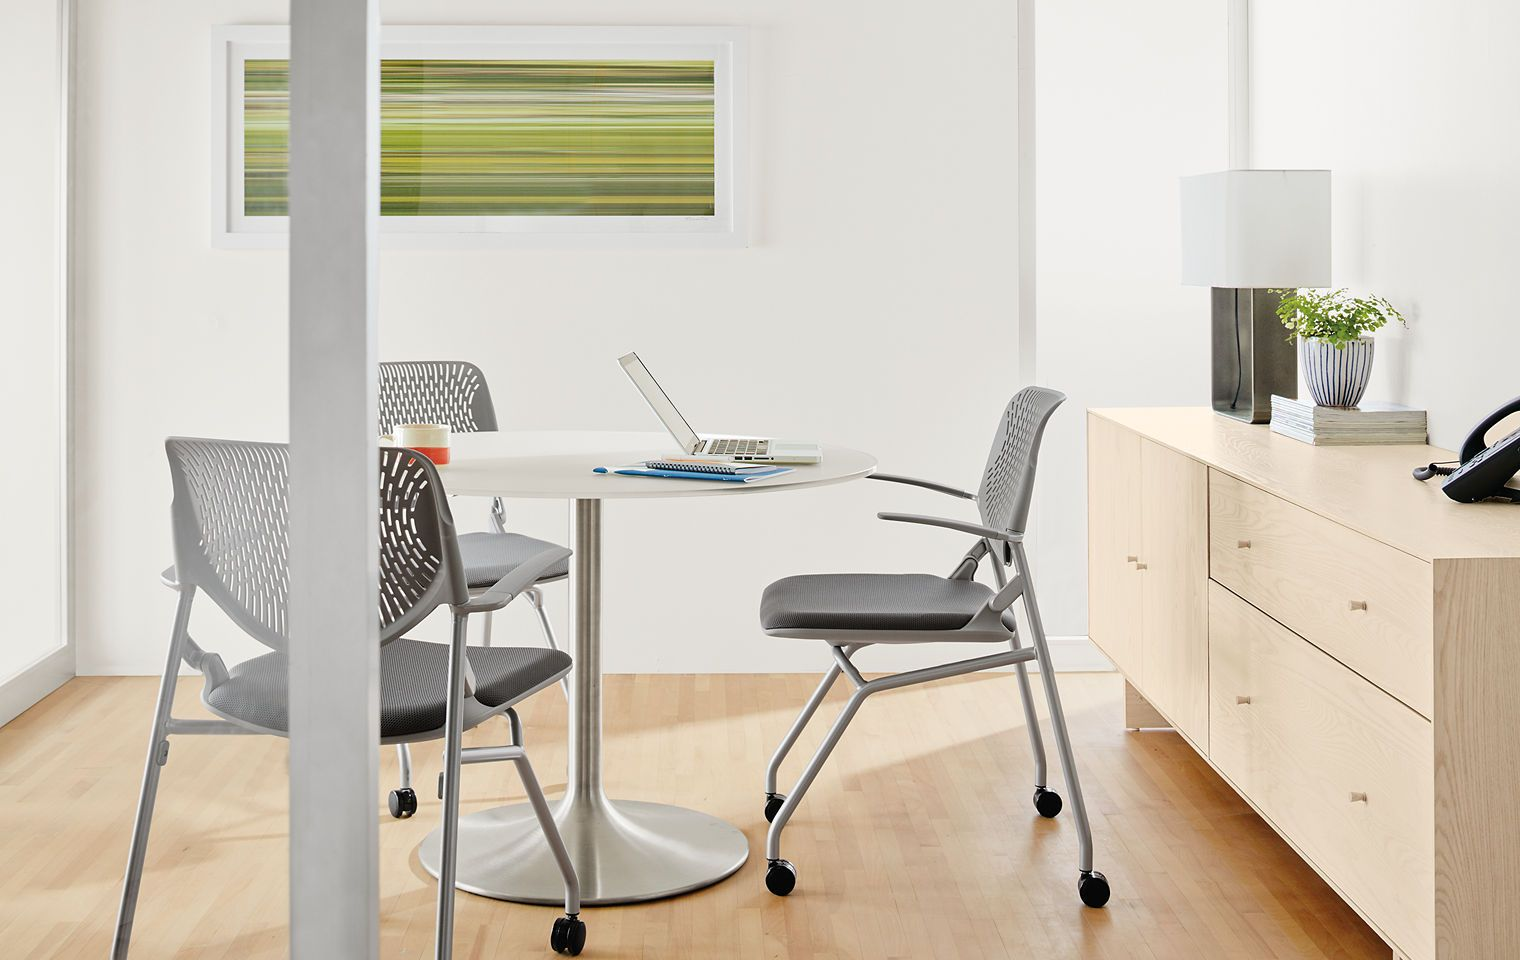 Handcrafted, American Made Modern Office Furniture Combines Beauty And  Functionality To Tackle Any Size Project. Home Office Furniture That Best  Suits You.